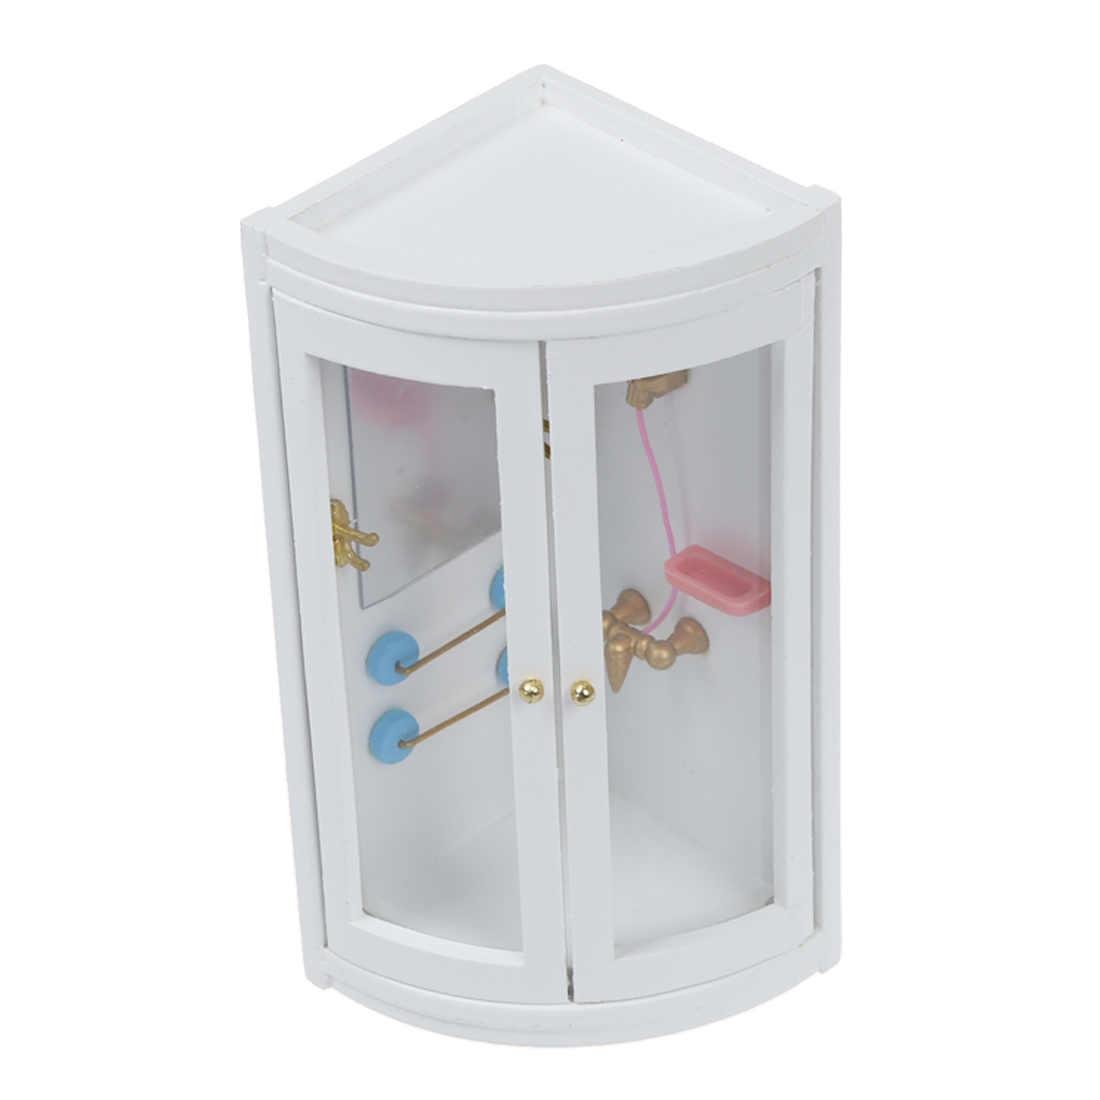 ABWE 1:12 Childen Doll house Miniature Bathroom Furniture Shower Room